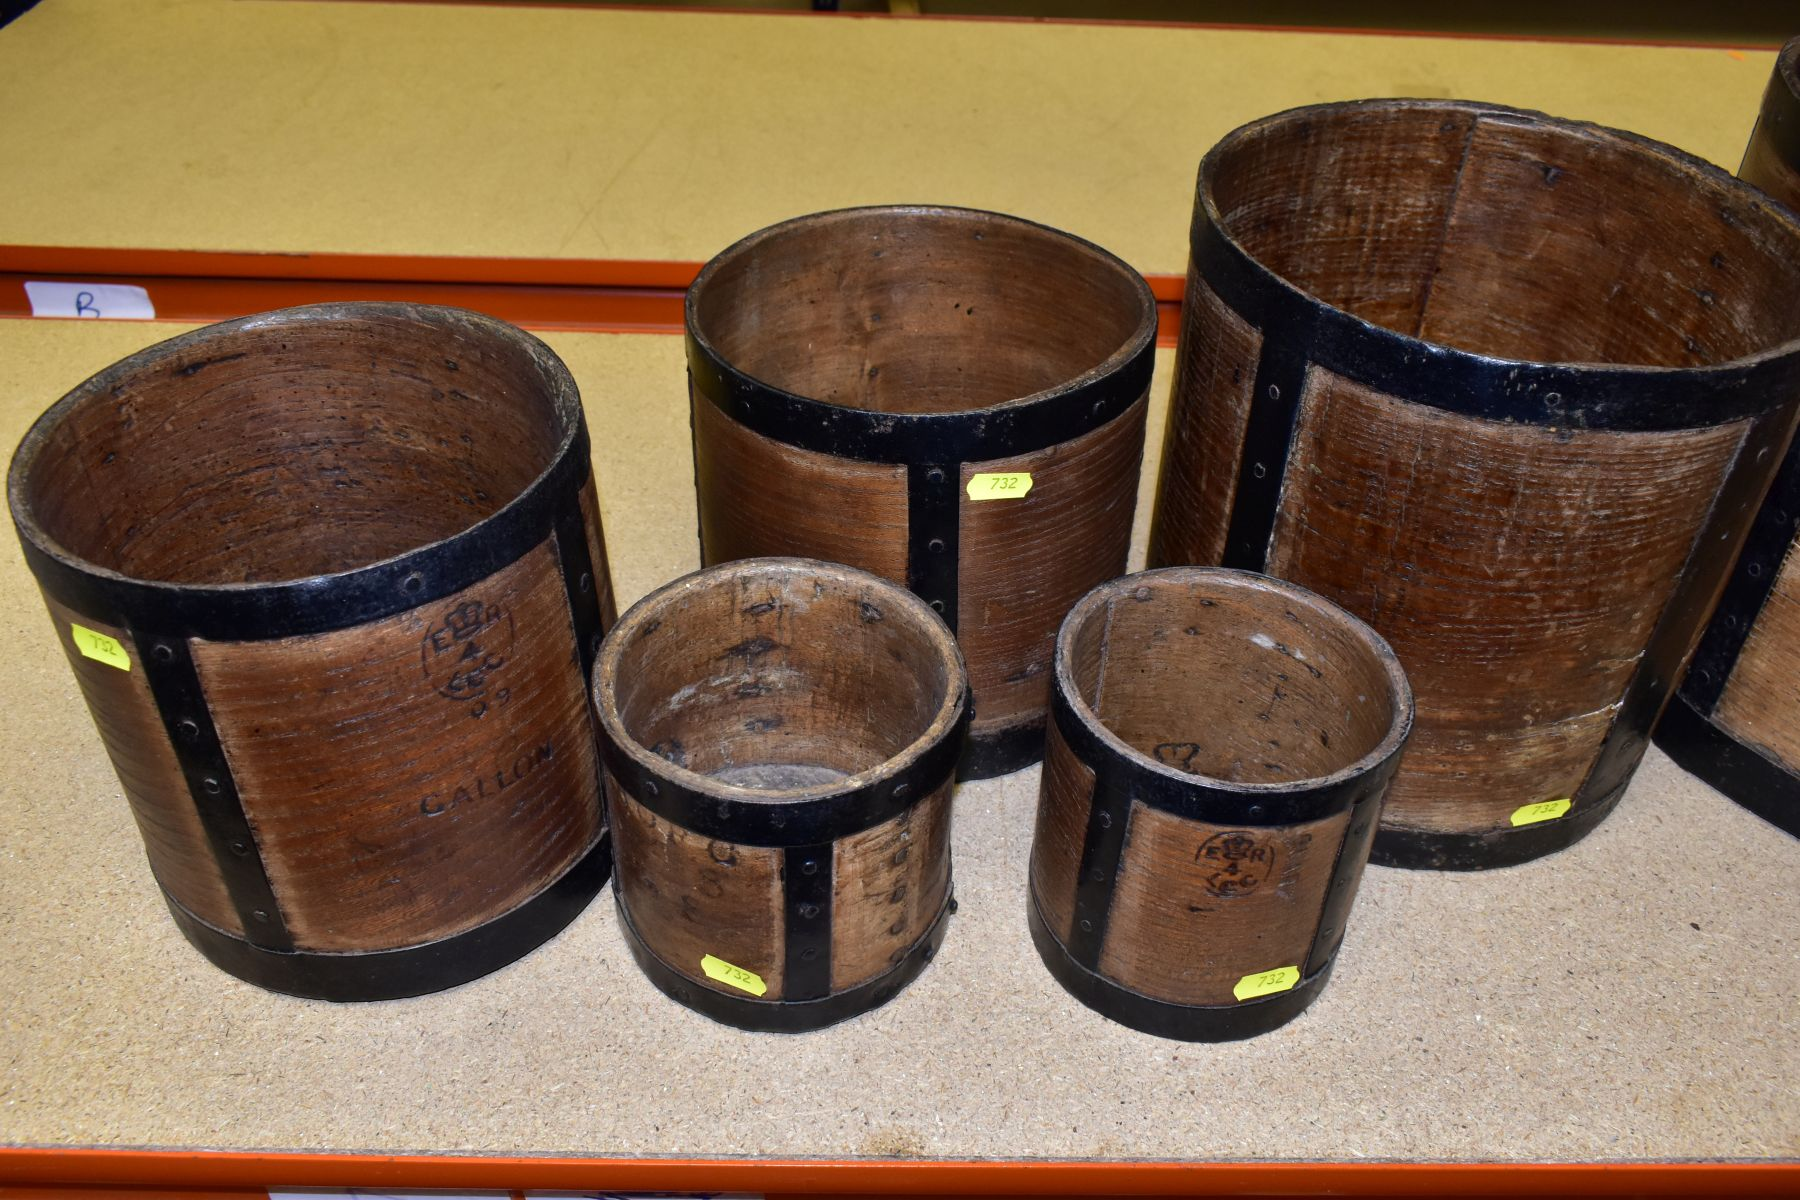 SIX BENTWOOD CORN MEASURES WITH IRON BANDING, sizes are half bushell, peck, gallon (x2) and quart ( - Image 6 of 6